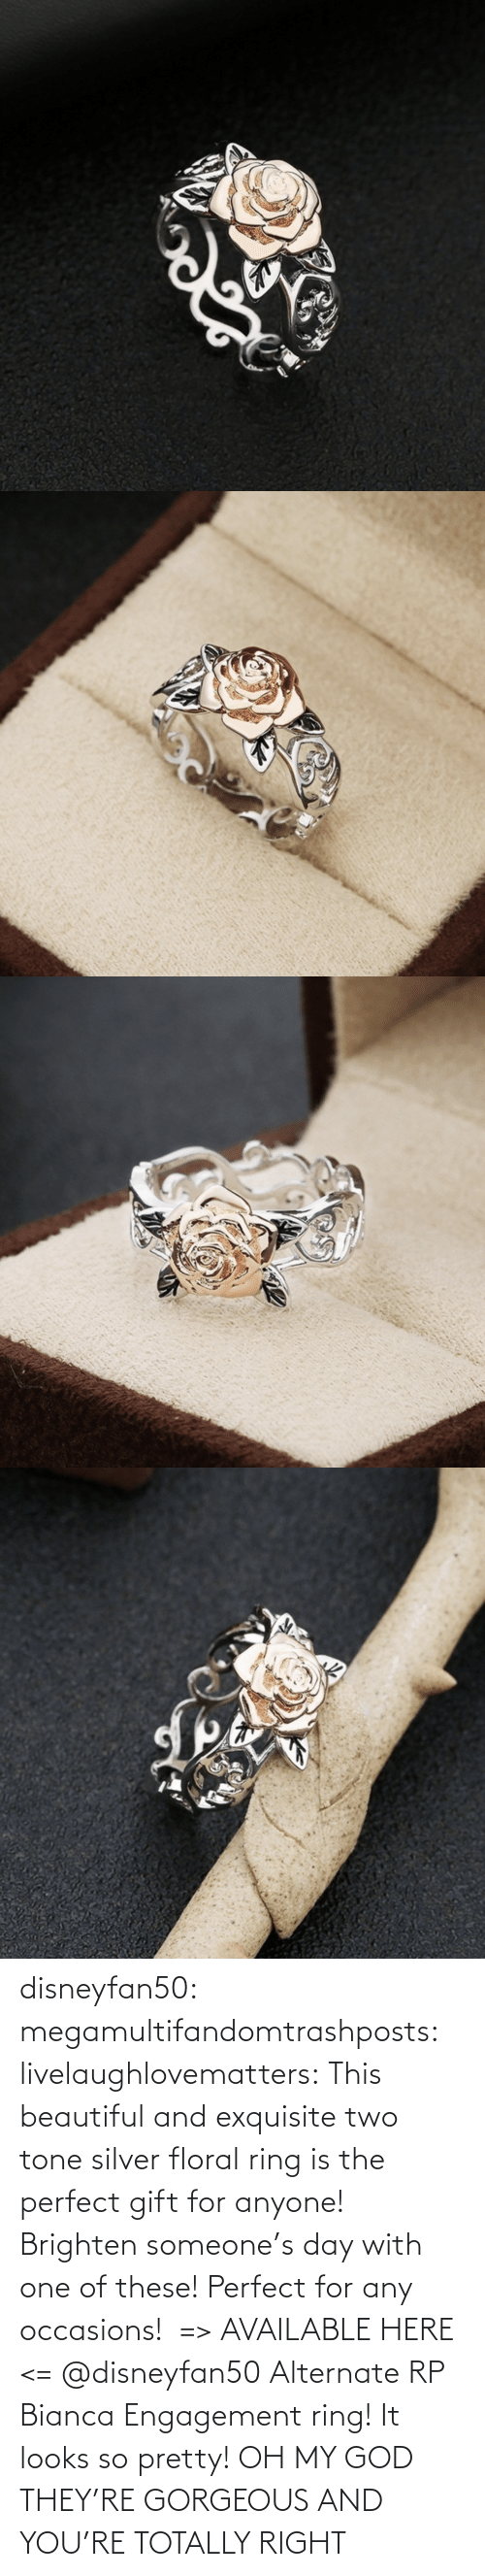 The Perfect: disneyfan50: megamultifandomtrashposts:  livelaughlovematters:  This beautiful and exquisite two tone silver floral ring is the perfect gift for anyone! Brighten someone's day with one of these! Perfect for any occasions!  => AVAILABLE HERE <=    @disneyfan50 Alternate RP Bianca Engagement ring! It looks so pretty!  OH MY GOD THEY'RE GORGEOUS AND YOU'RE TOTALLY RIGHT